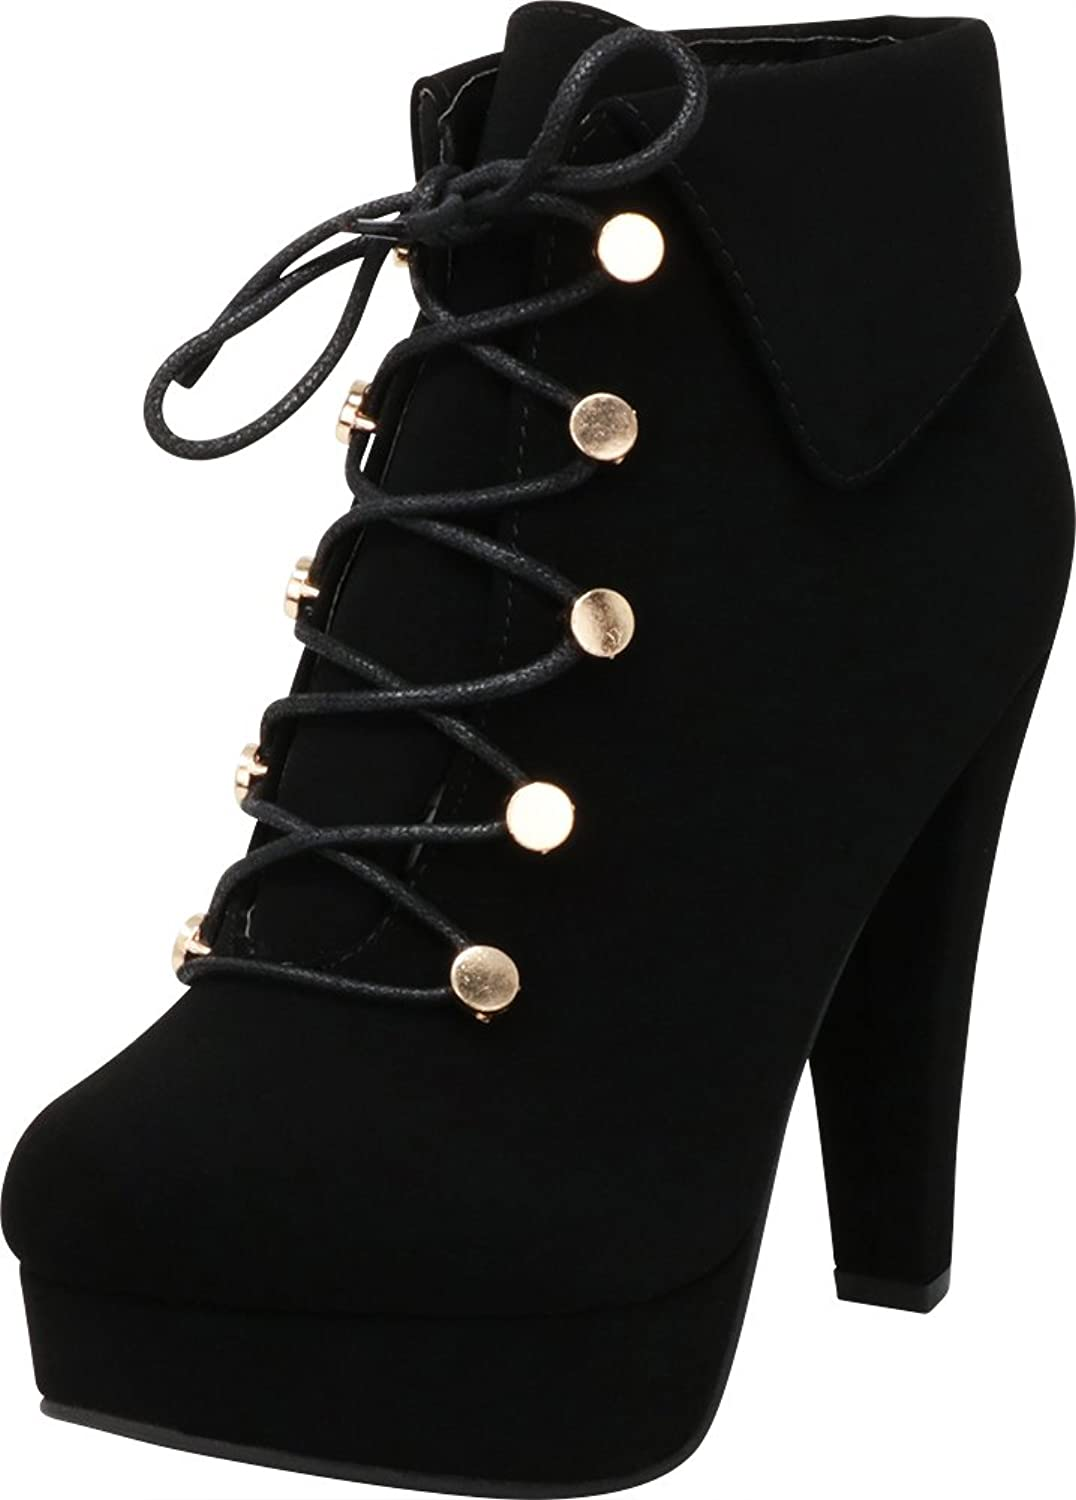 Cambridge Select Women's Fold Over Cuff Lace-up Chunky Platform High Heel Ankle Bootie